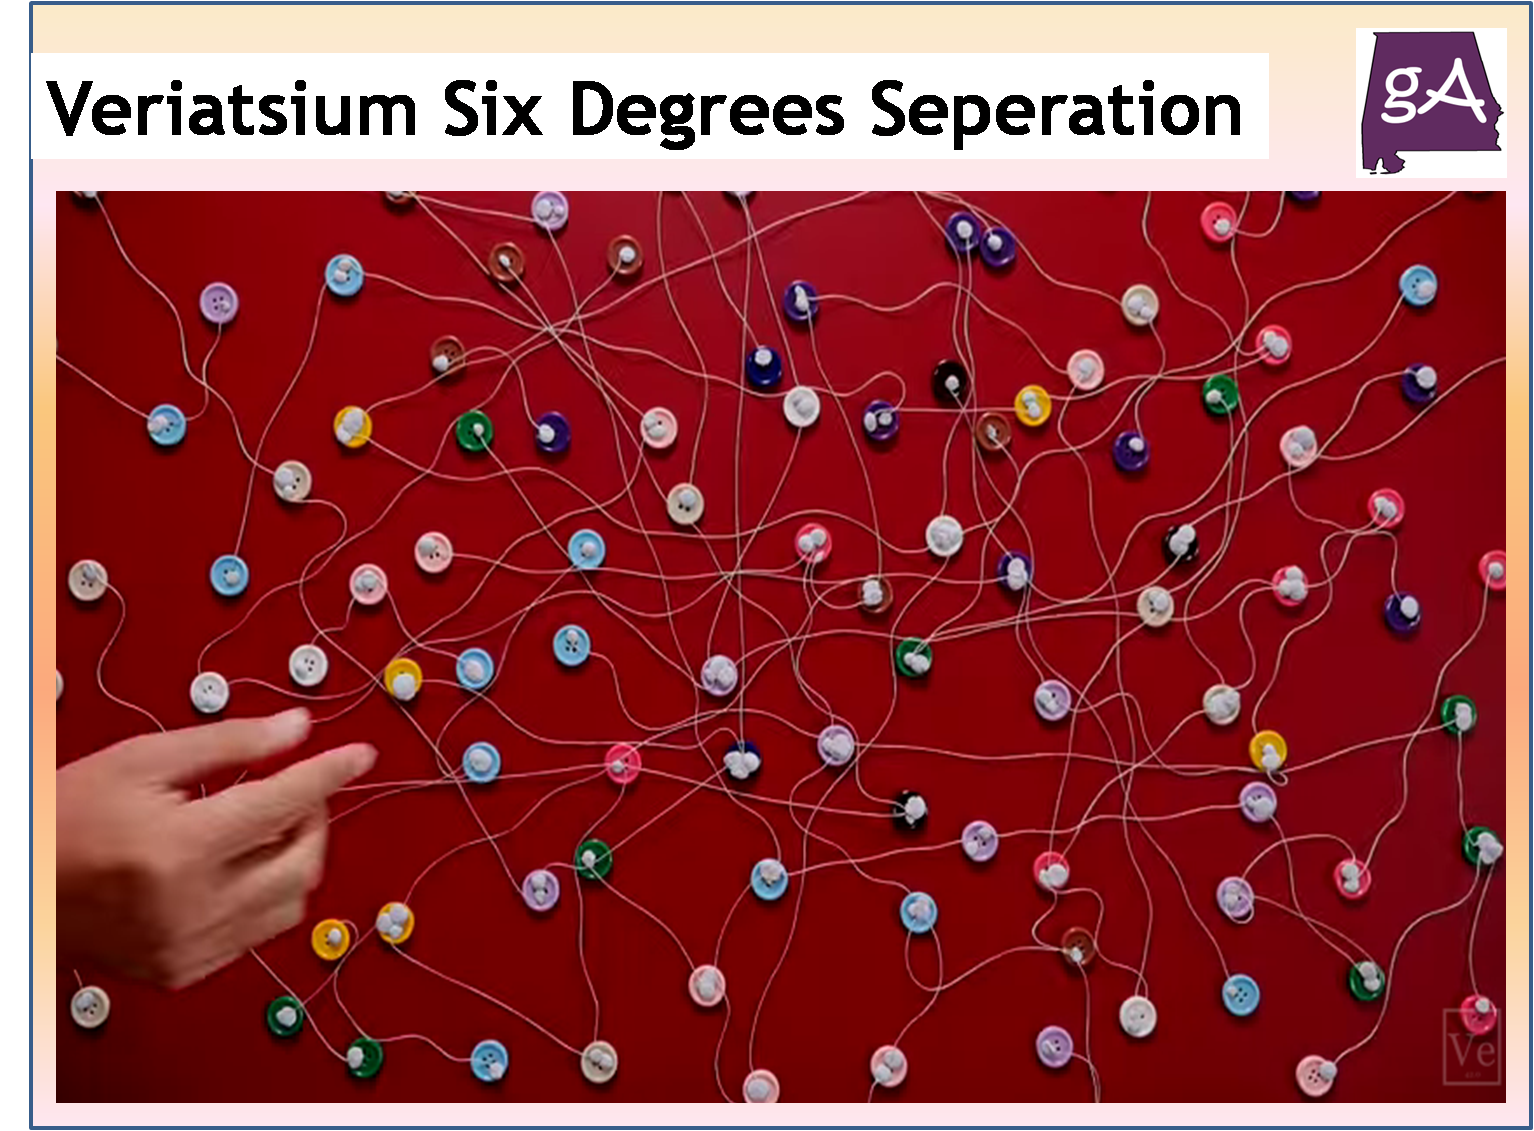 But I Thought I Would Talk About This From The Youchannel Veritasium Derek Talks About The Science Behind The Six Degrees Of Separation